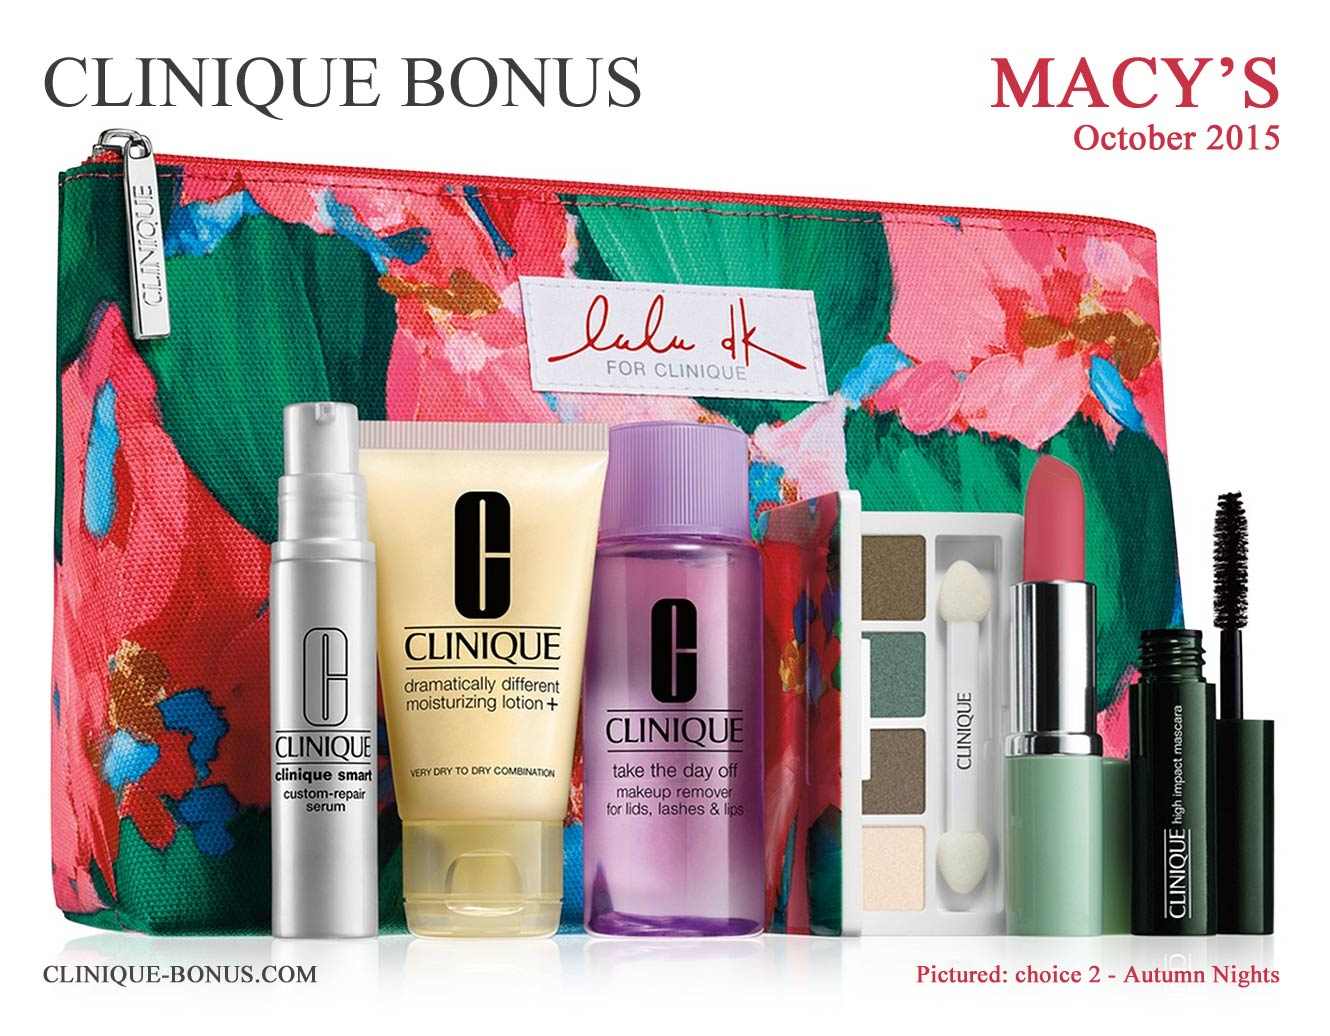 Clinique coupons at macy's